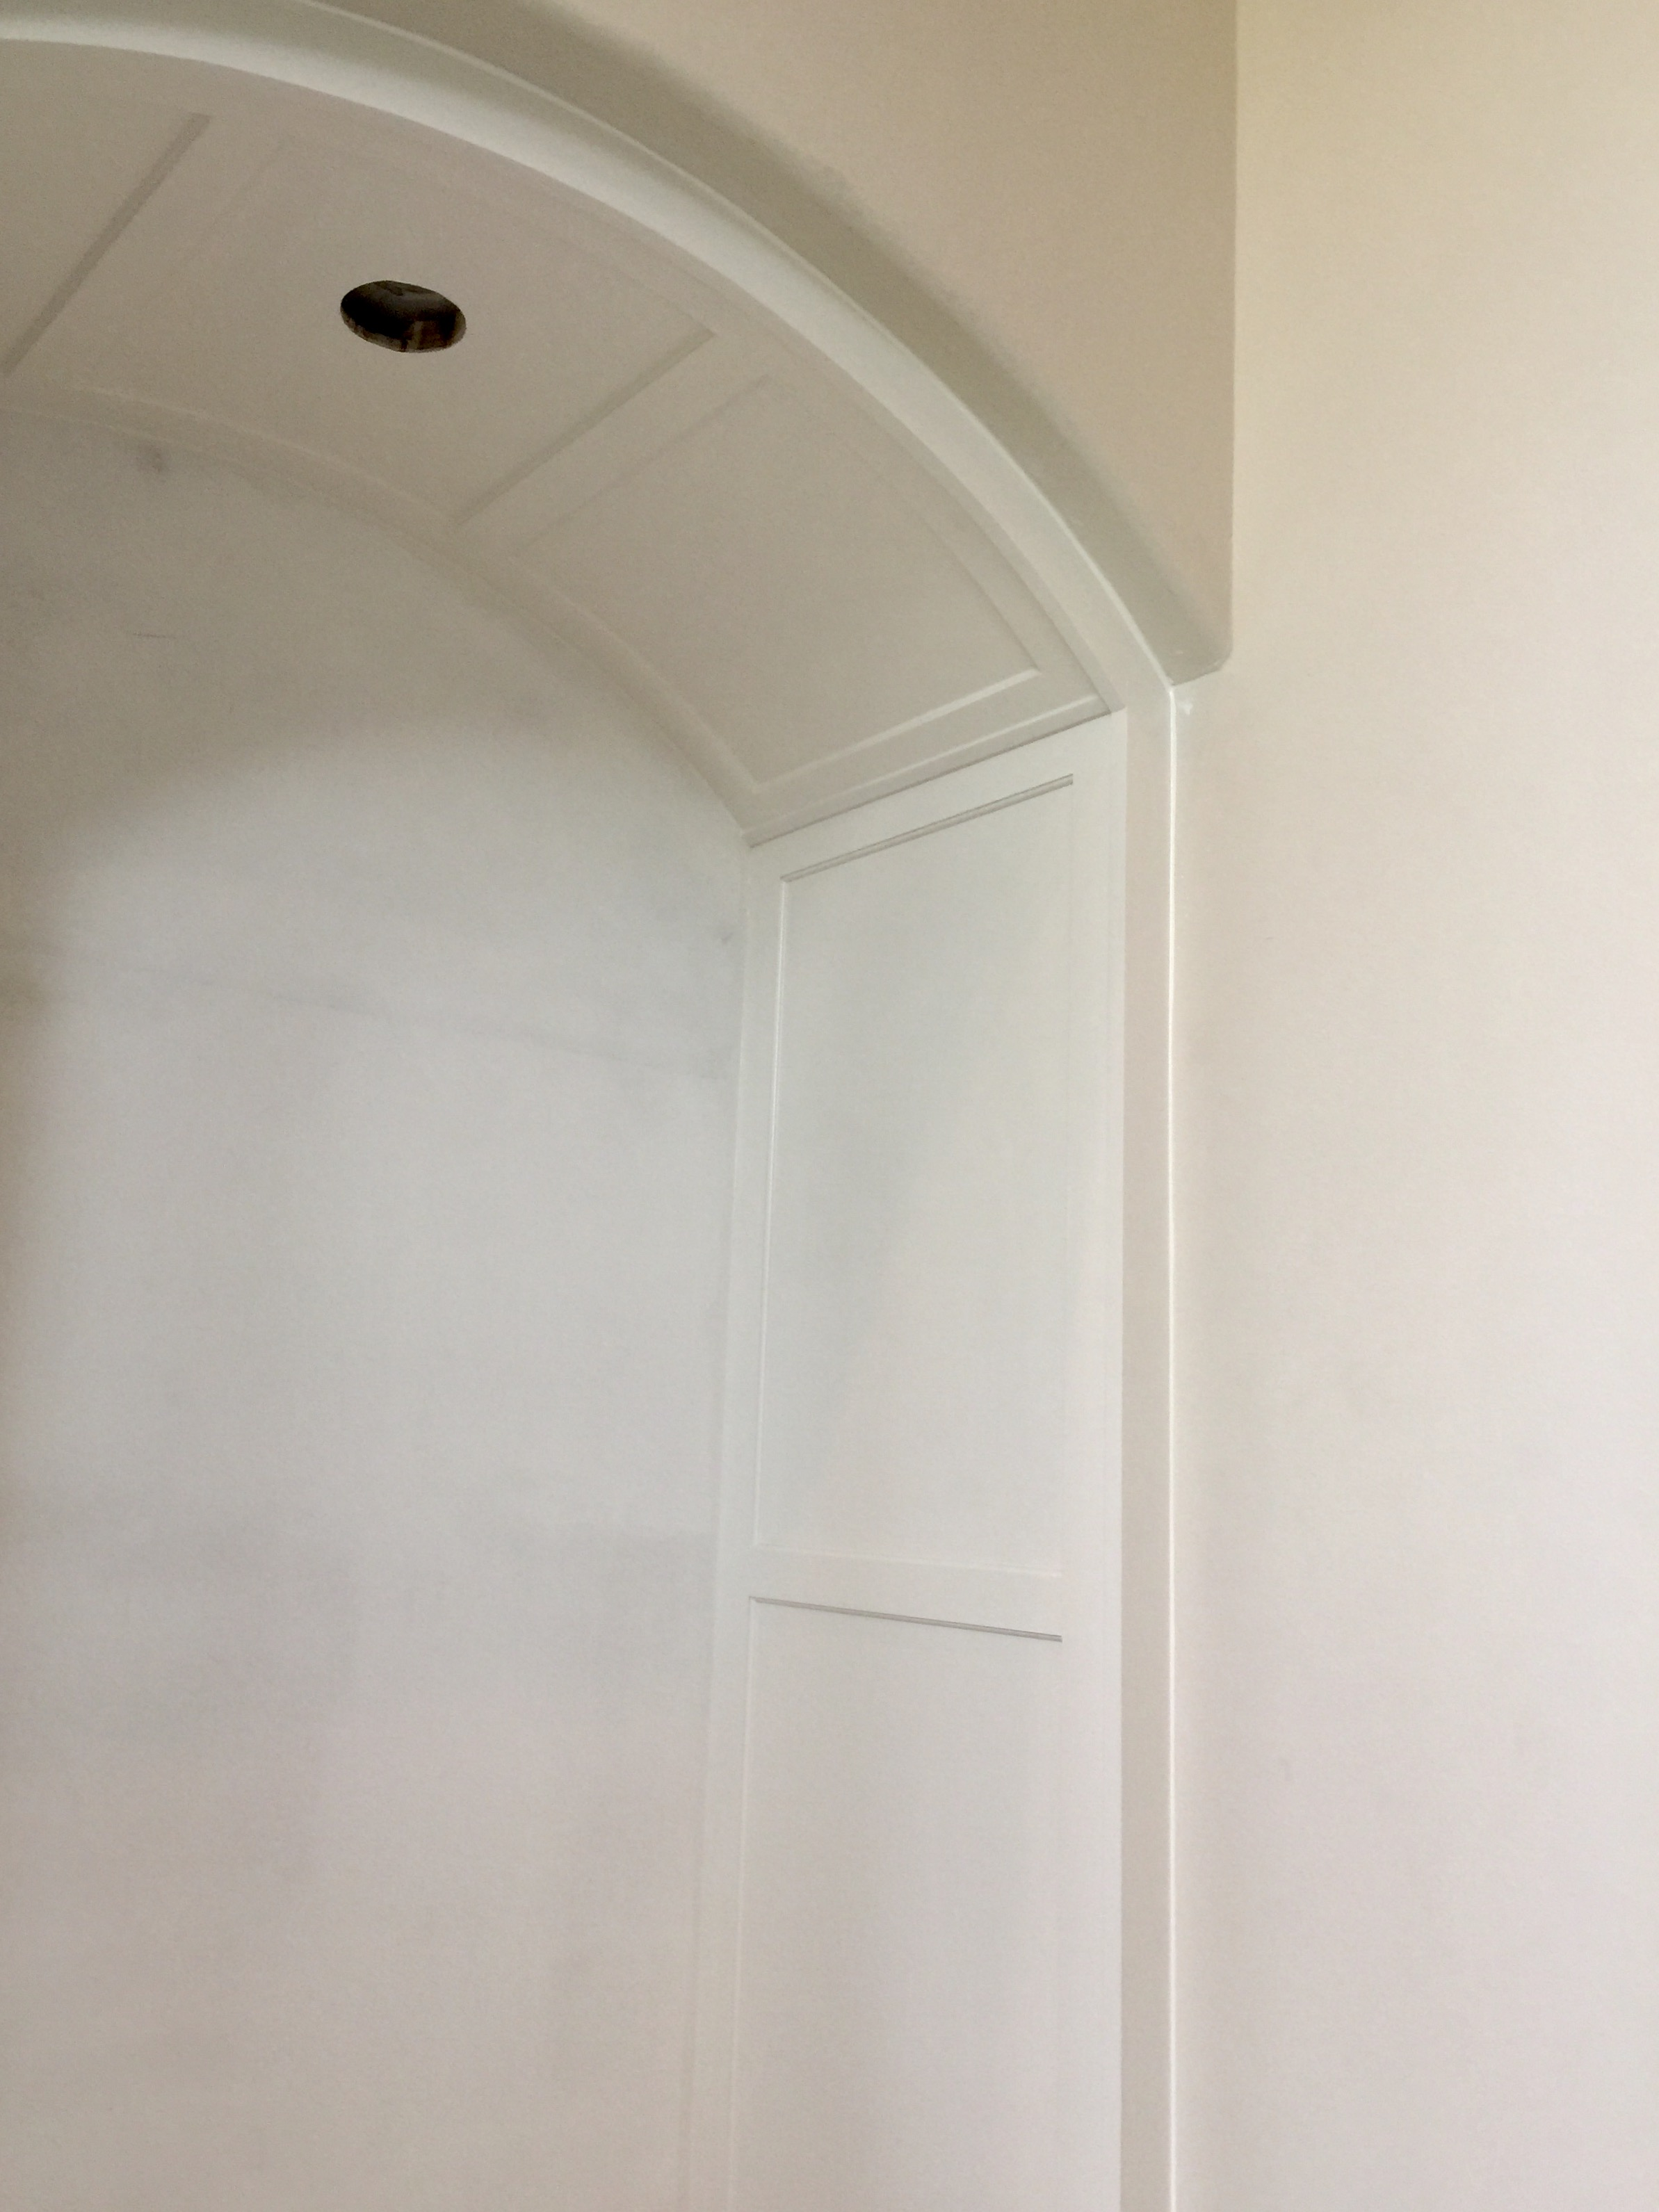 Adding this paneling to the sides of the niches gave these more detail and added quality. #paneling #niche